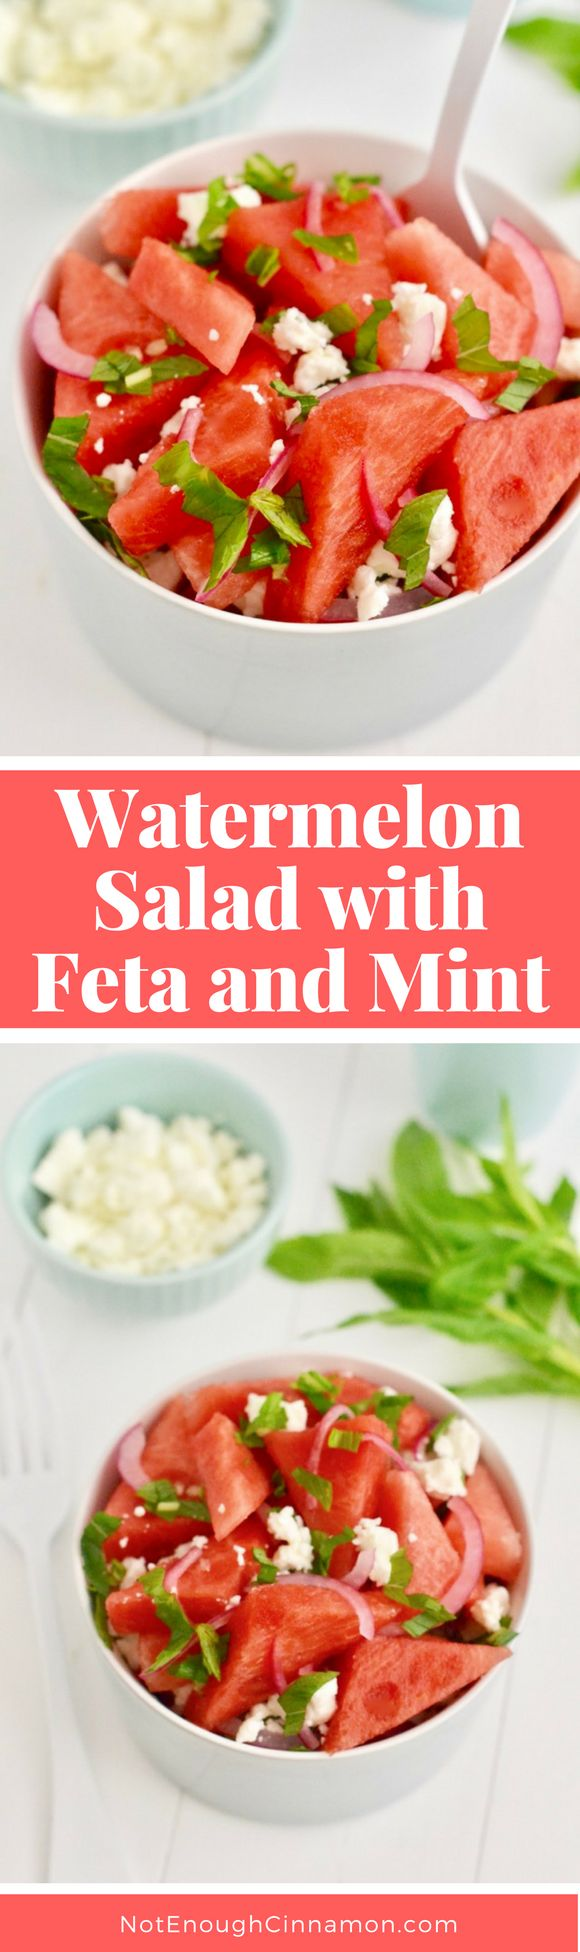 Watermelon Salad with Feta and Mint - Perfect recipe on a hot summer day! – NotEnoughCinnamon.com #vegetarian #healthy